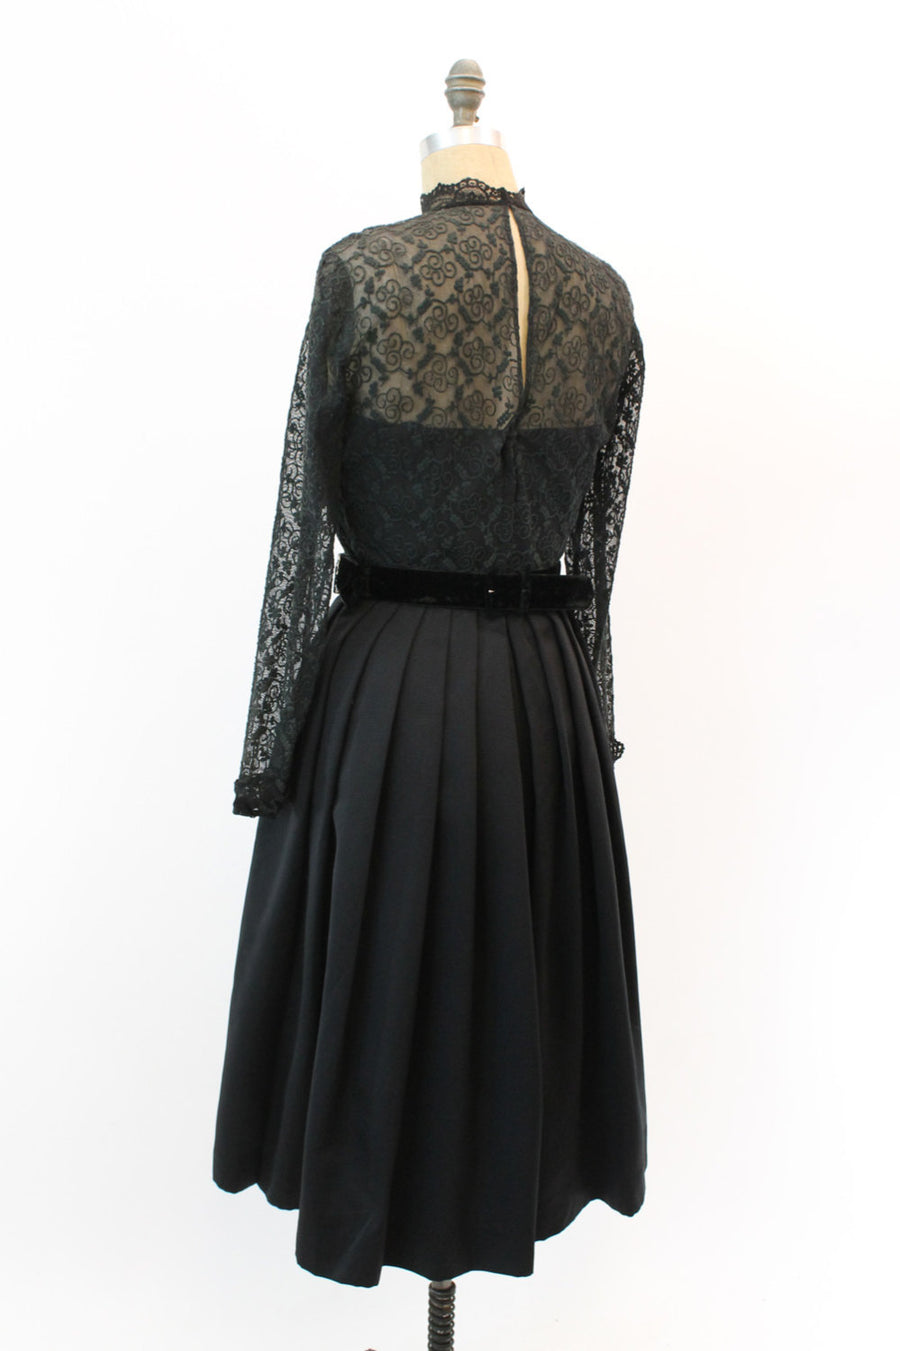 1950s embroidered lace dress | small | vintage black cocktail dress full skirt